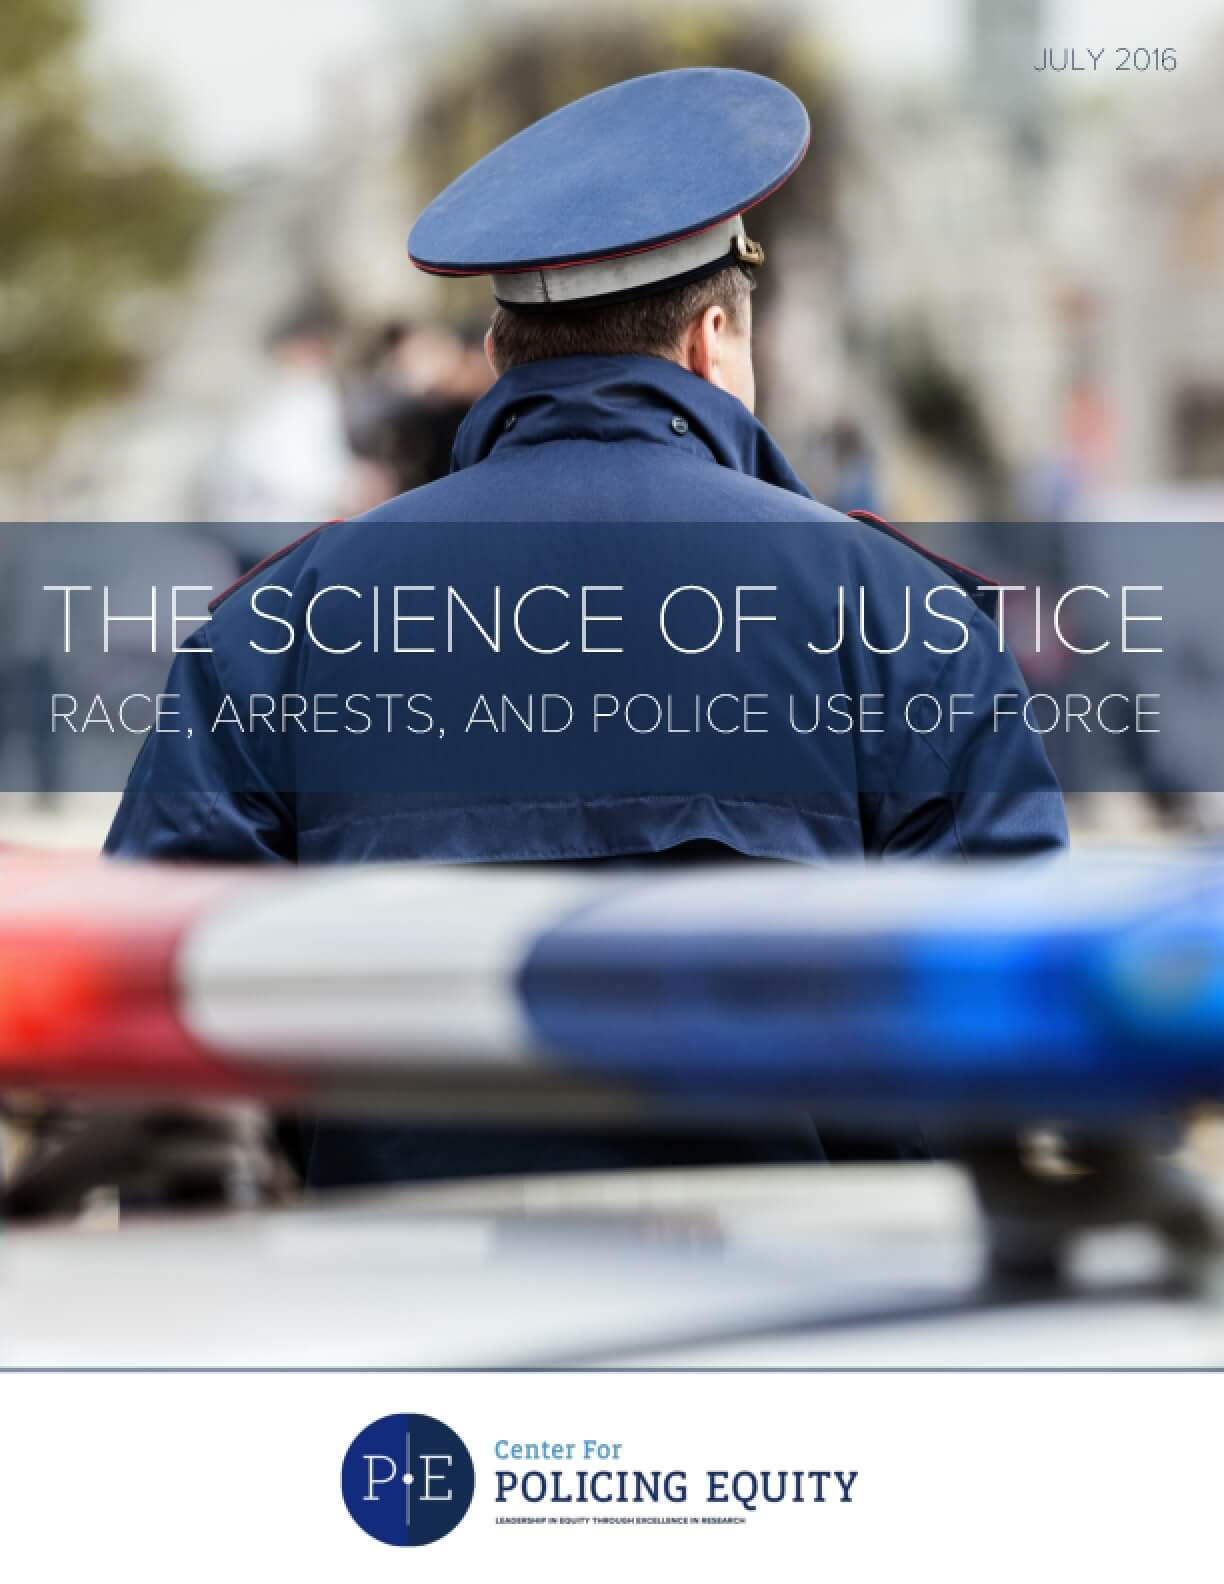 The Science of Justice, Race, Arrests, and Police Use of Force ...